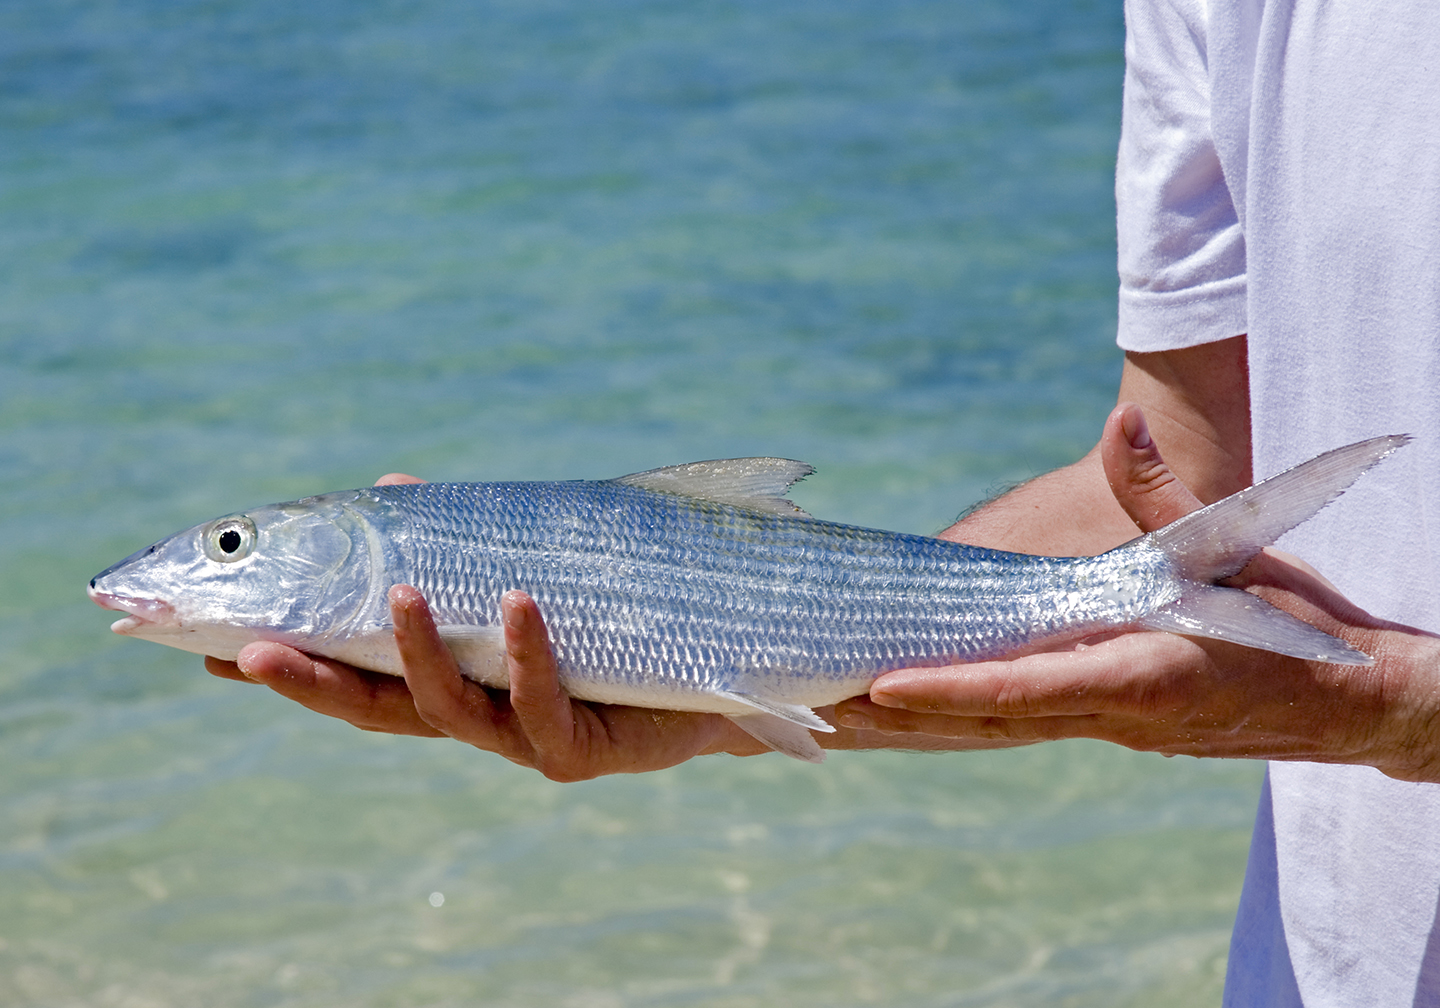 A man holding a Bonefish with shallow water behind him